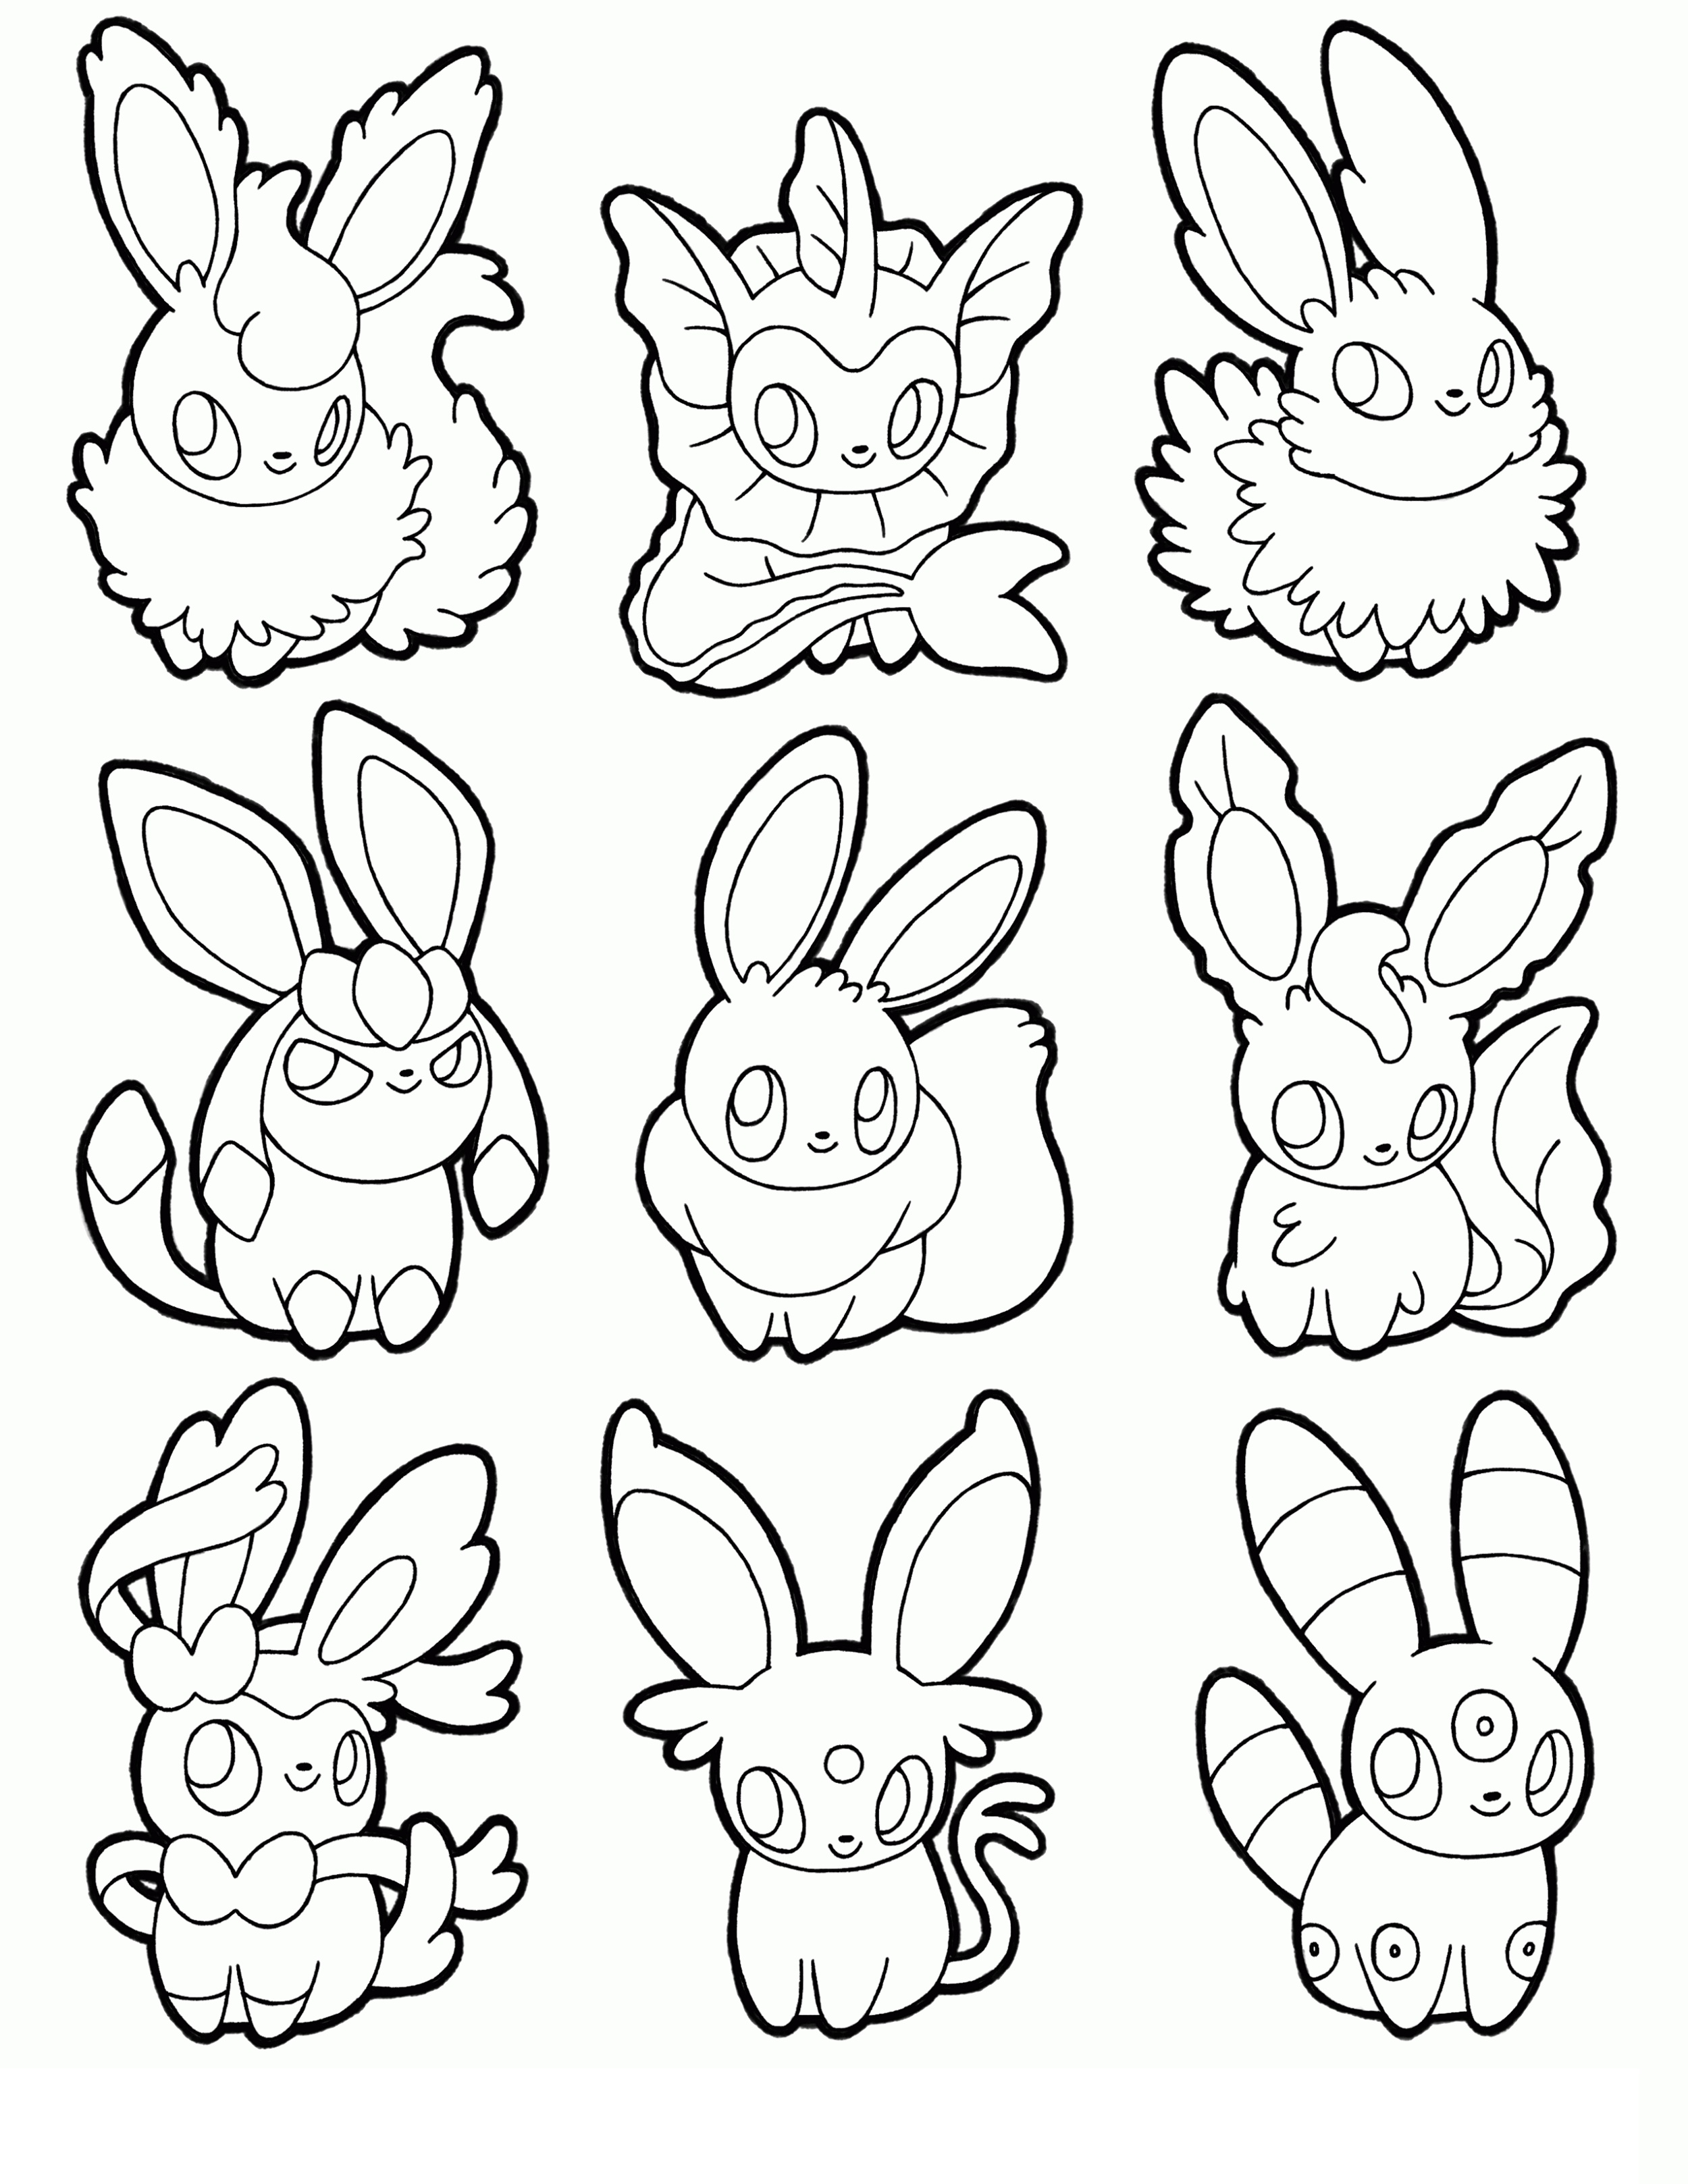 Eevee Eeveelutions Coloring Pages